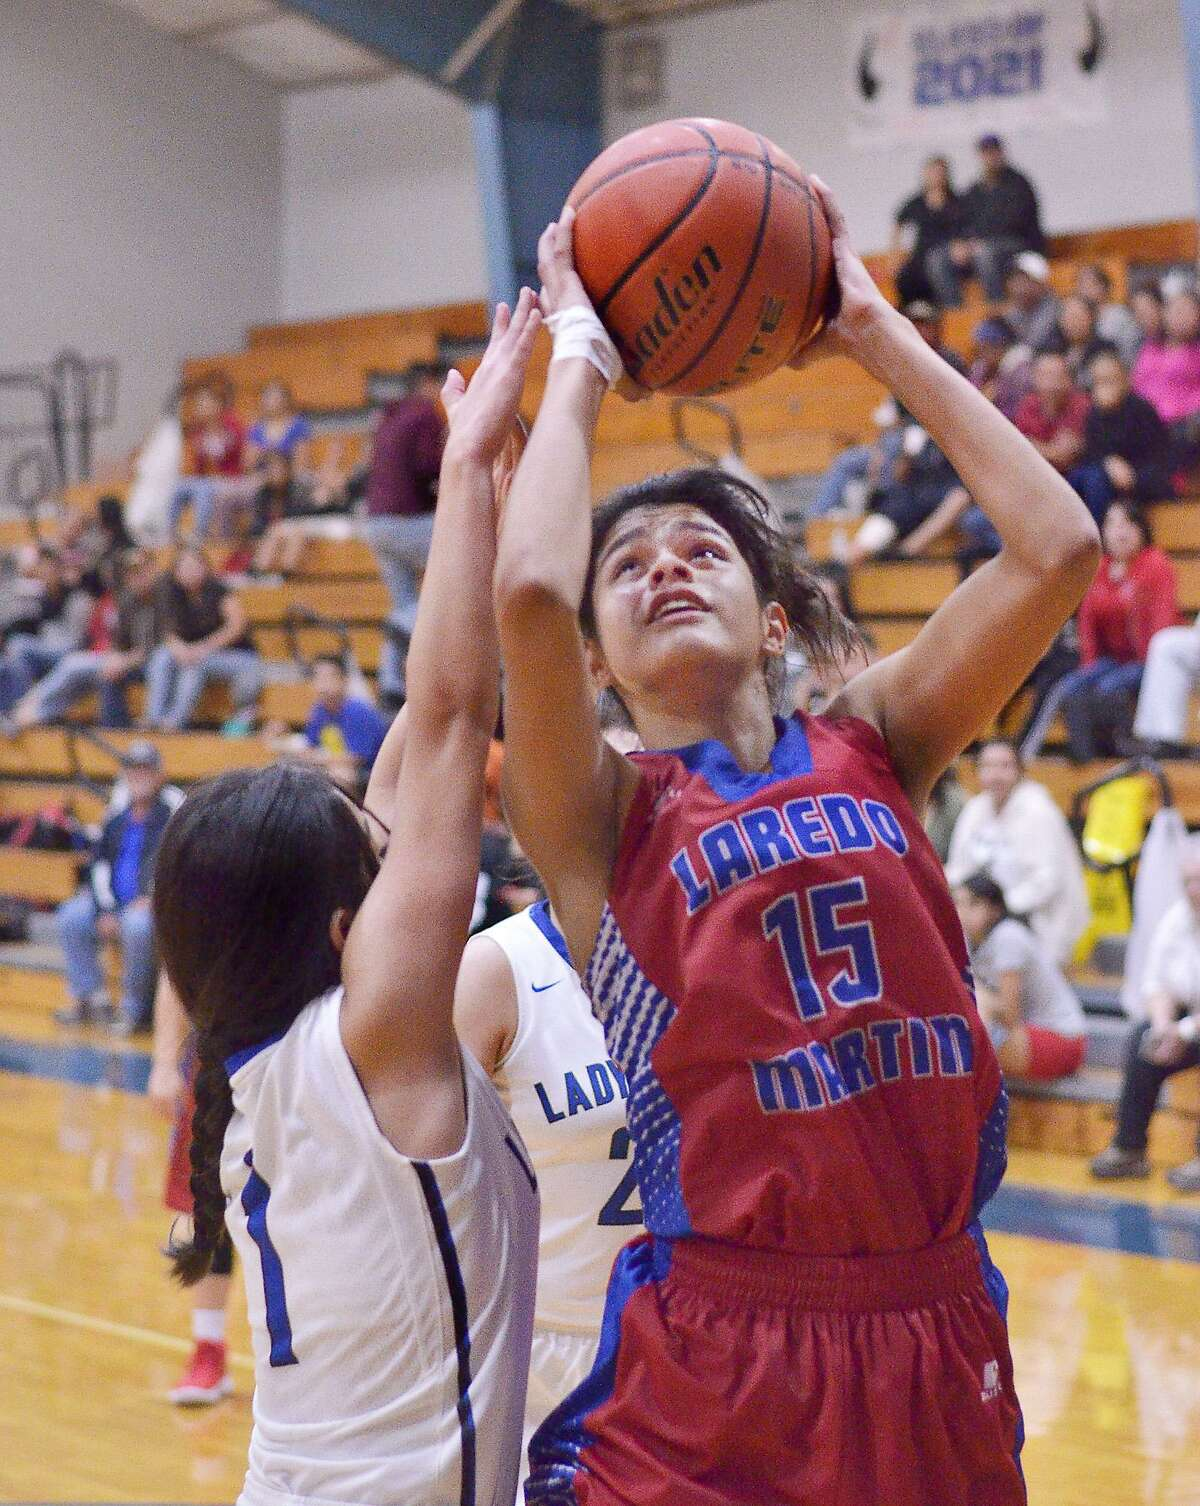 Nallely Olguin finished with 21 points leading Martin to a 57-39 win on Tuesday night to take over fourth place in District 31-5A.